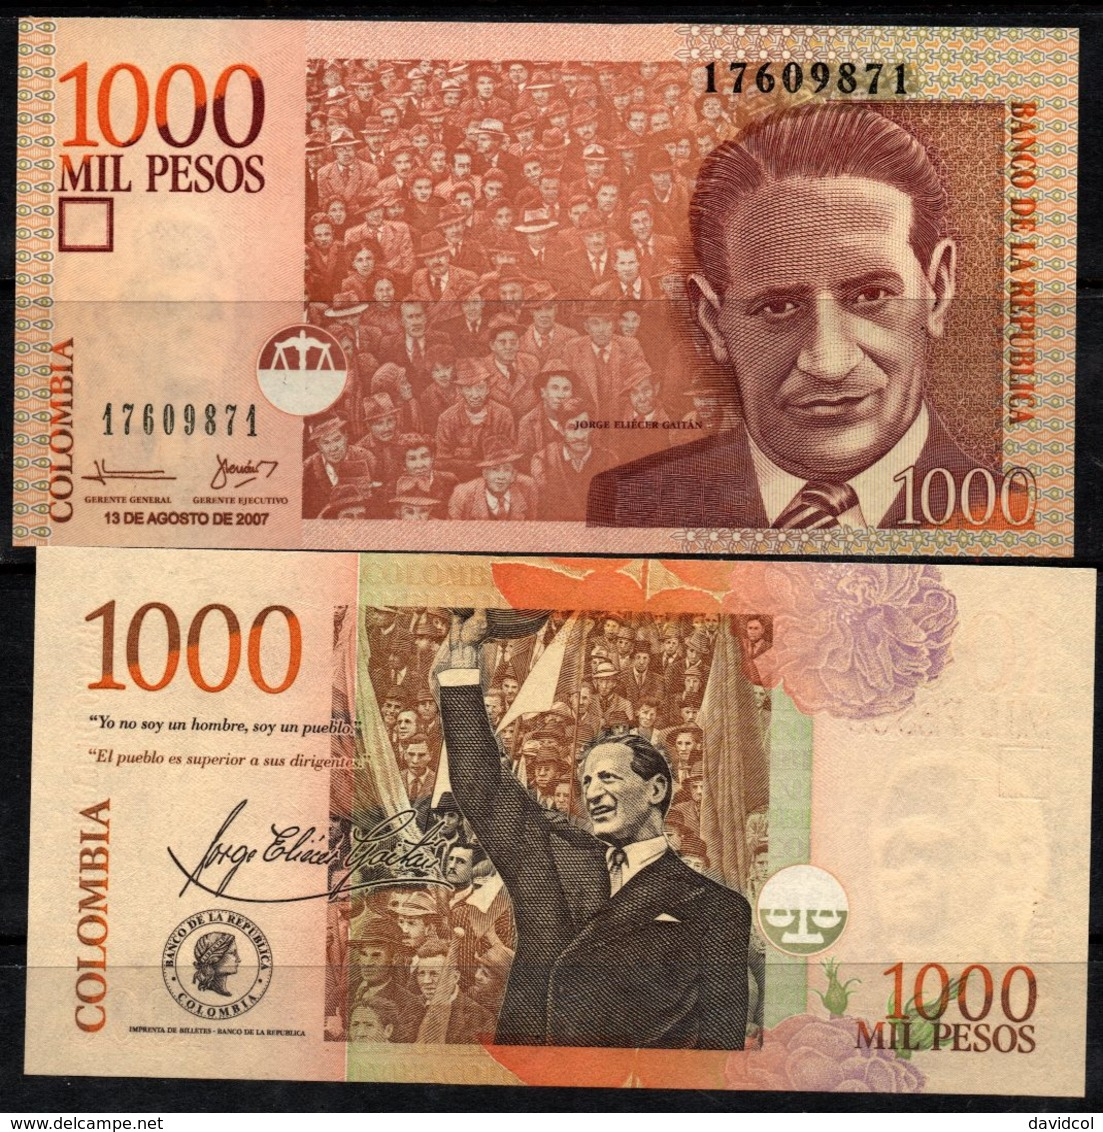 COLOMBIA - 2007- MIL PESOS  ( $ 1000 ) - UNCIRCULATED. CONDITION 9/10 - Colombie